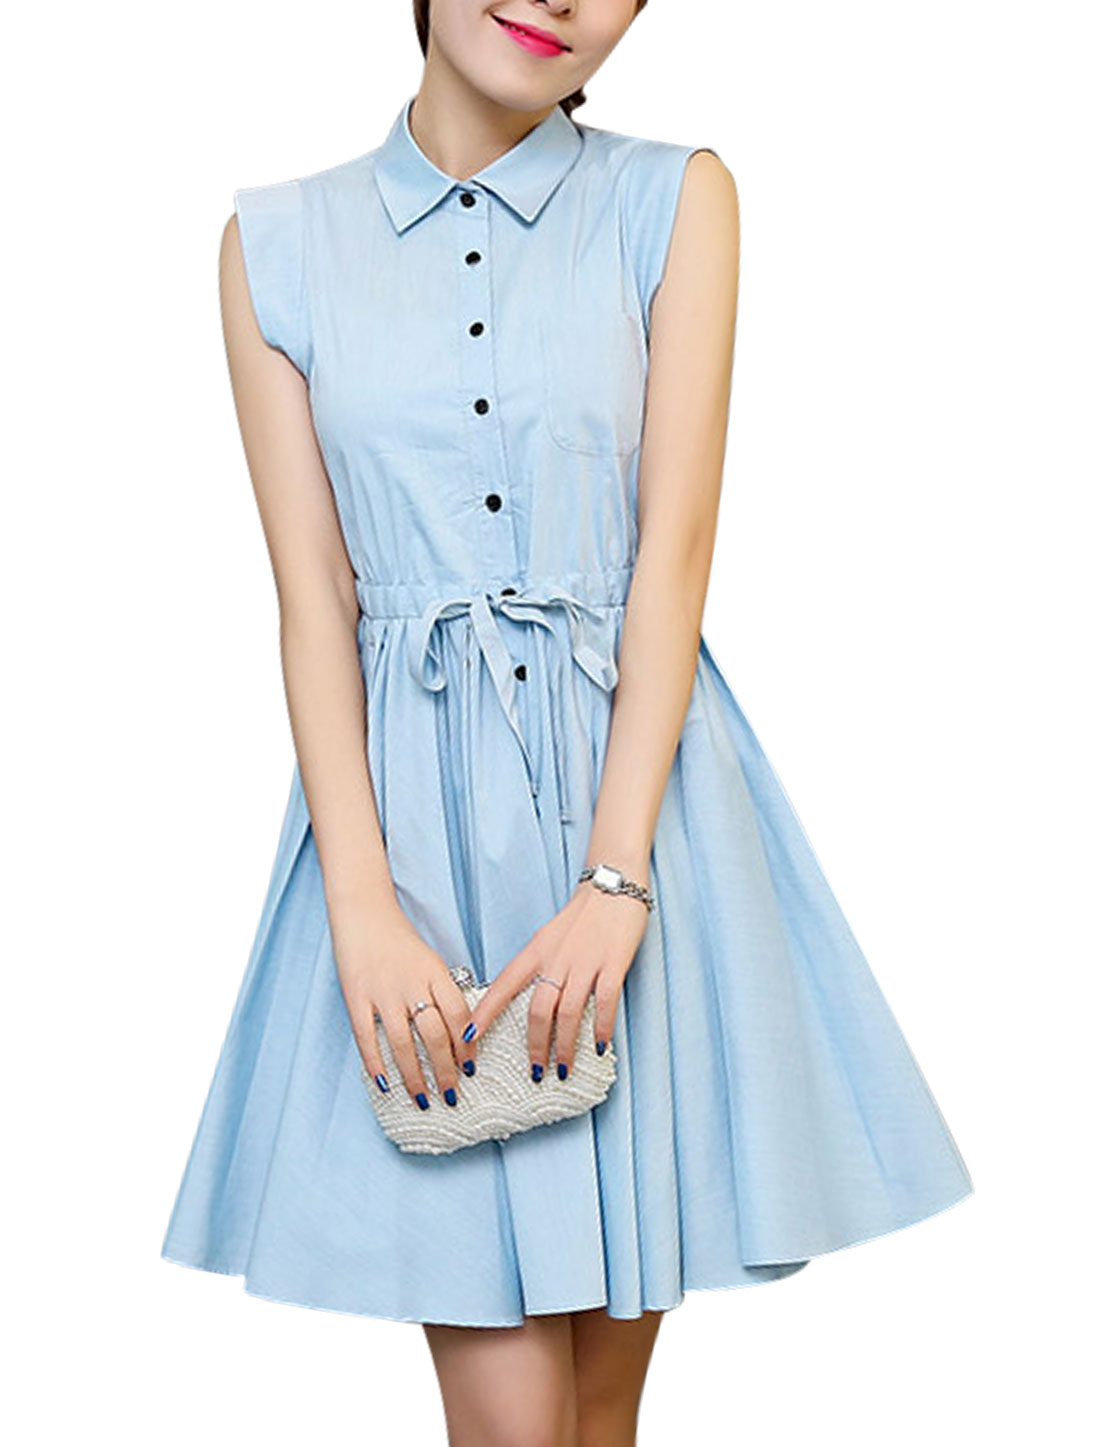 Women Point Collar Sleeveless Button Down Casual Shirt Dress Sky Blue M